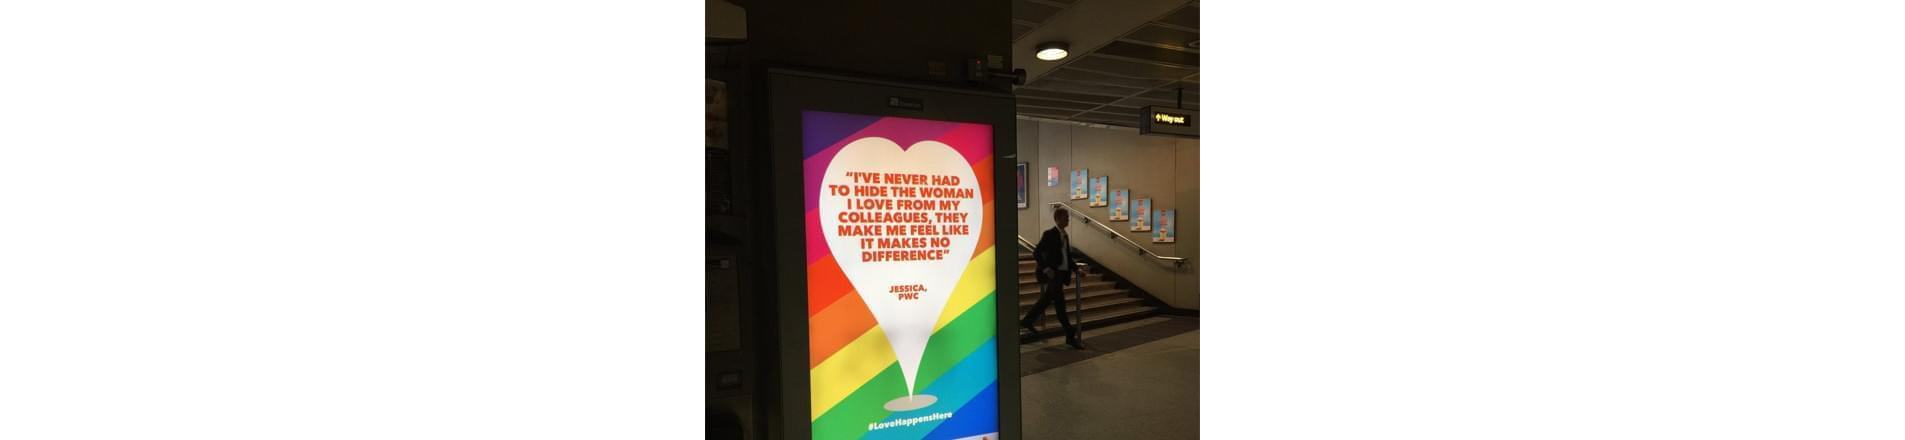 a PwC London Pride advert on the London Underground, which reads 'I've never had to hide the woman I love from my colleagues, they make me feel like it makes no difference.'